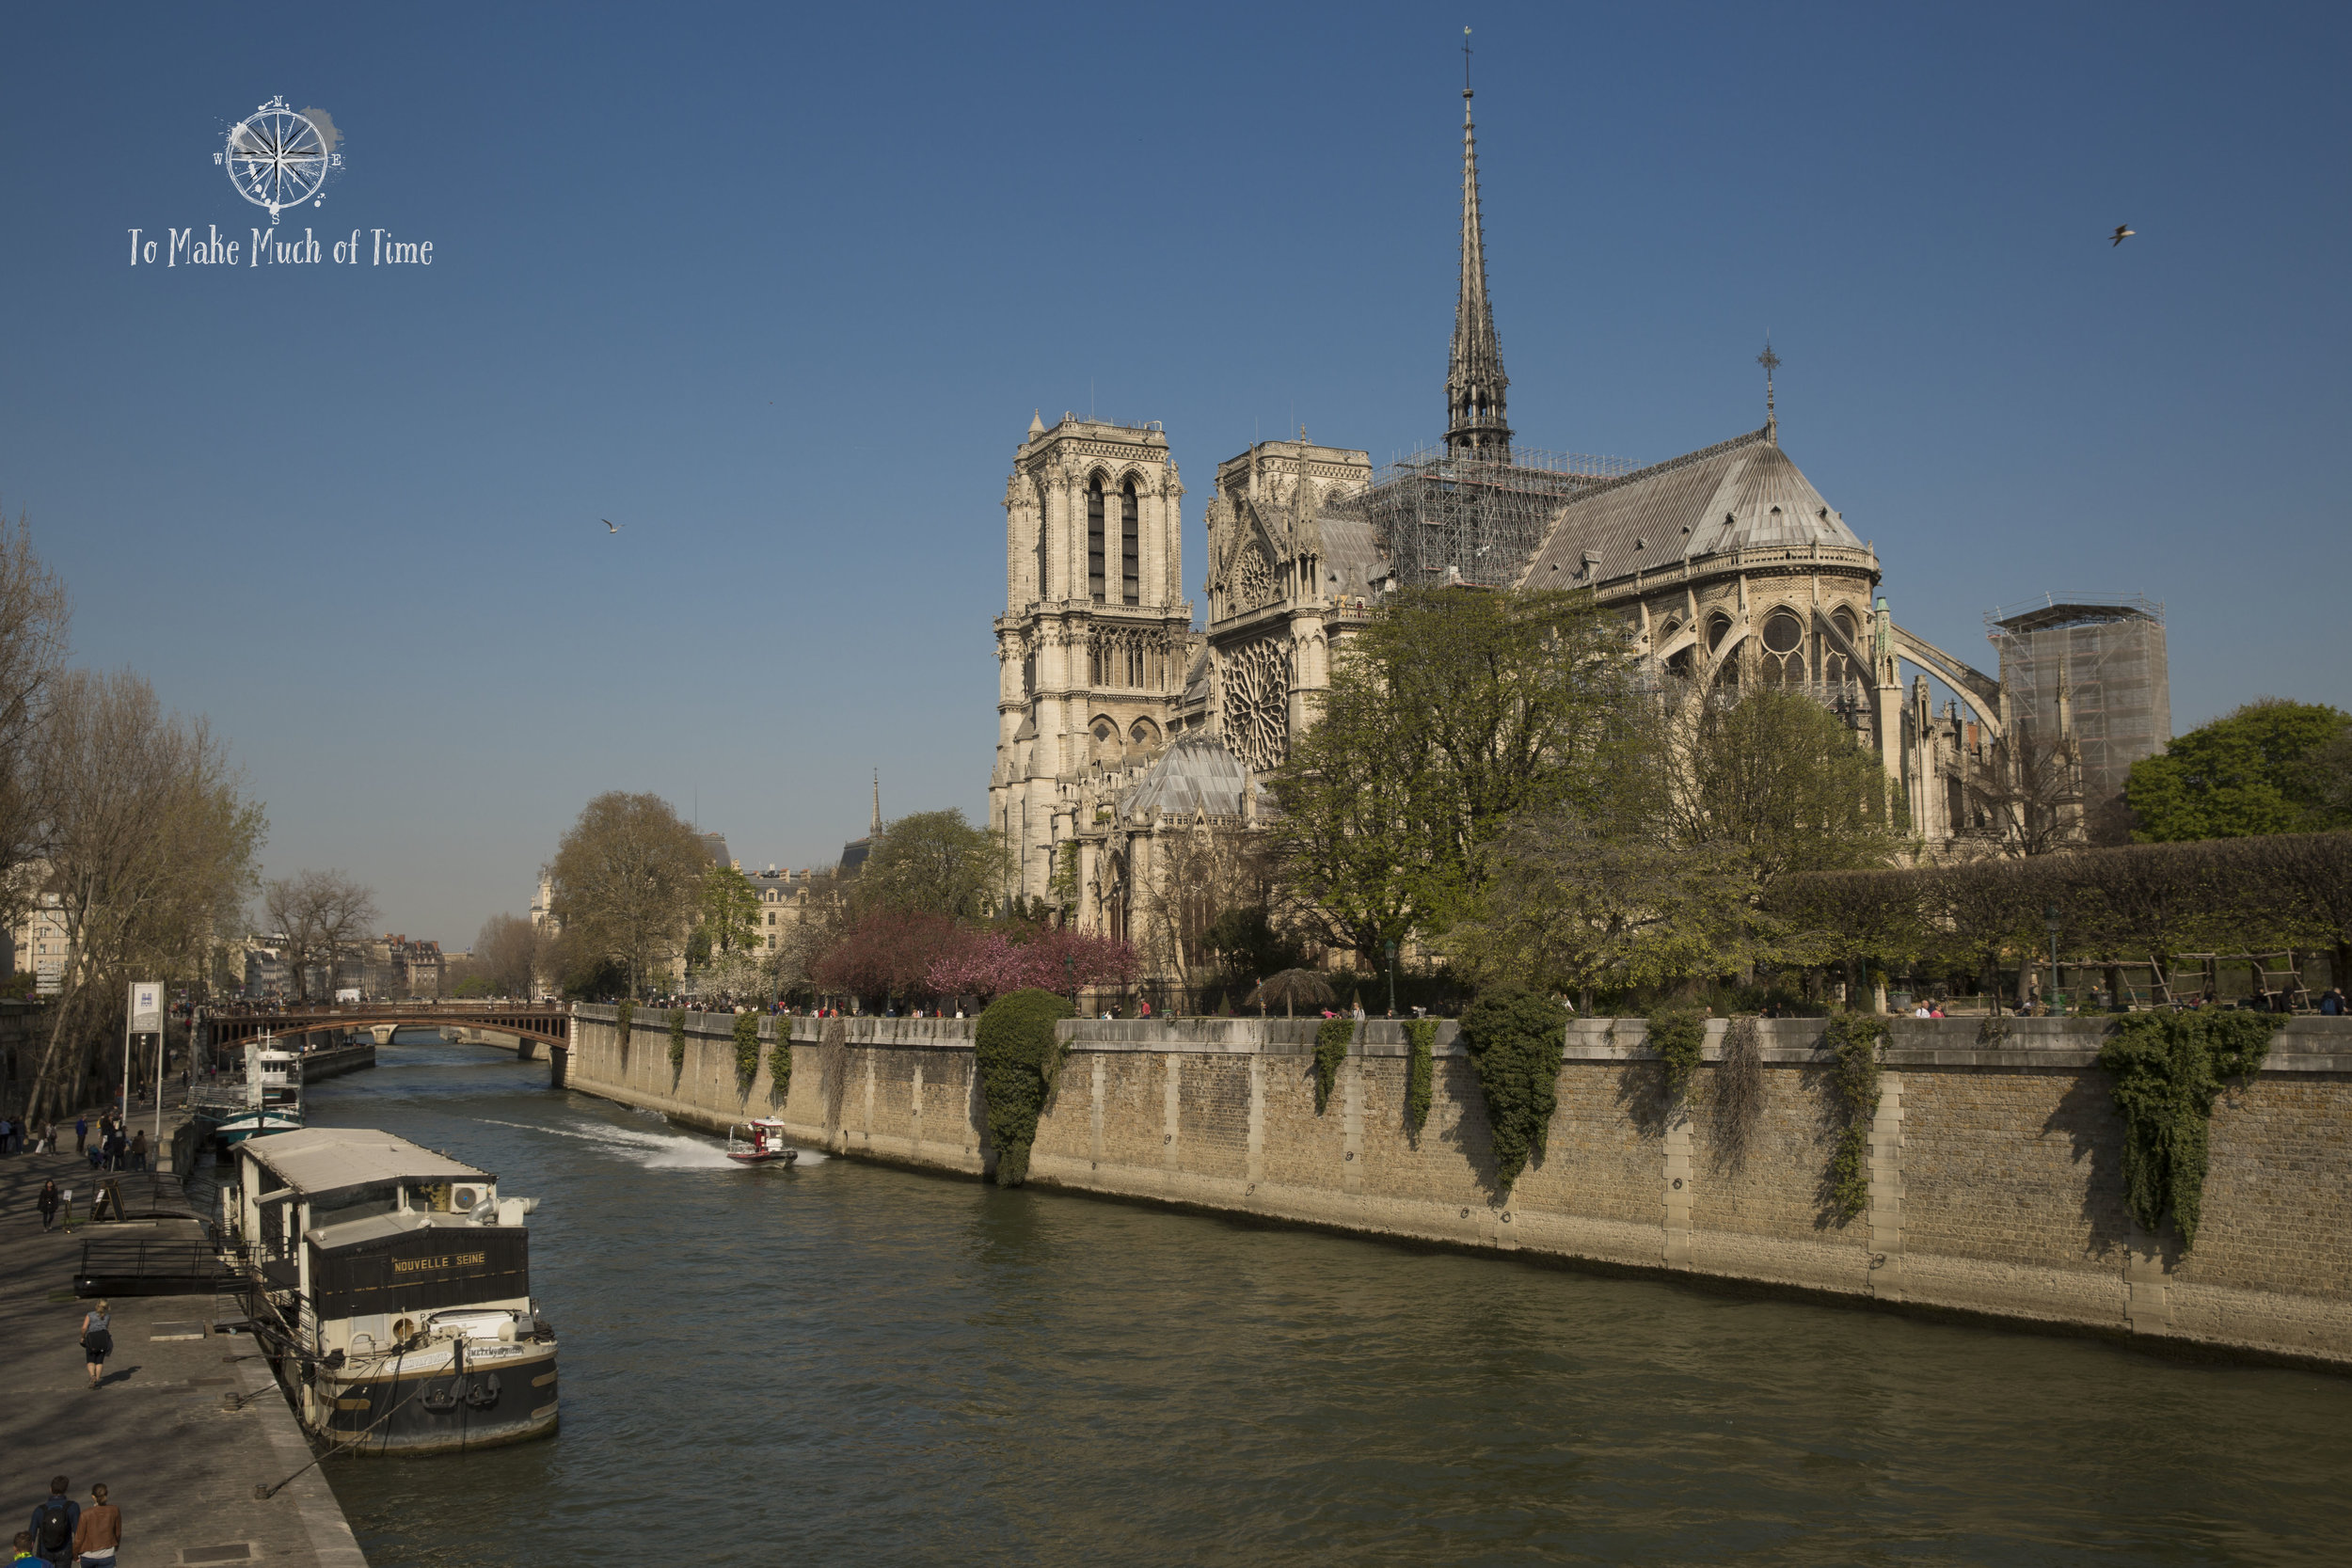 April in Paris! Cherry blossoms add a splash of color against the tan of Notre-Dame.